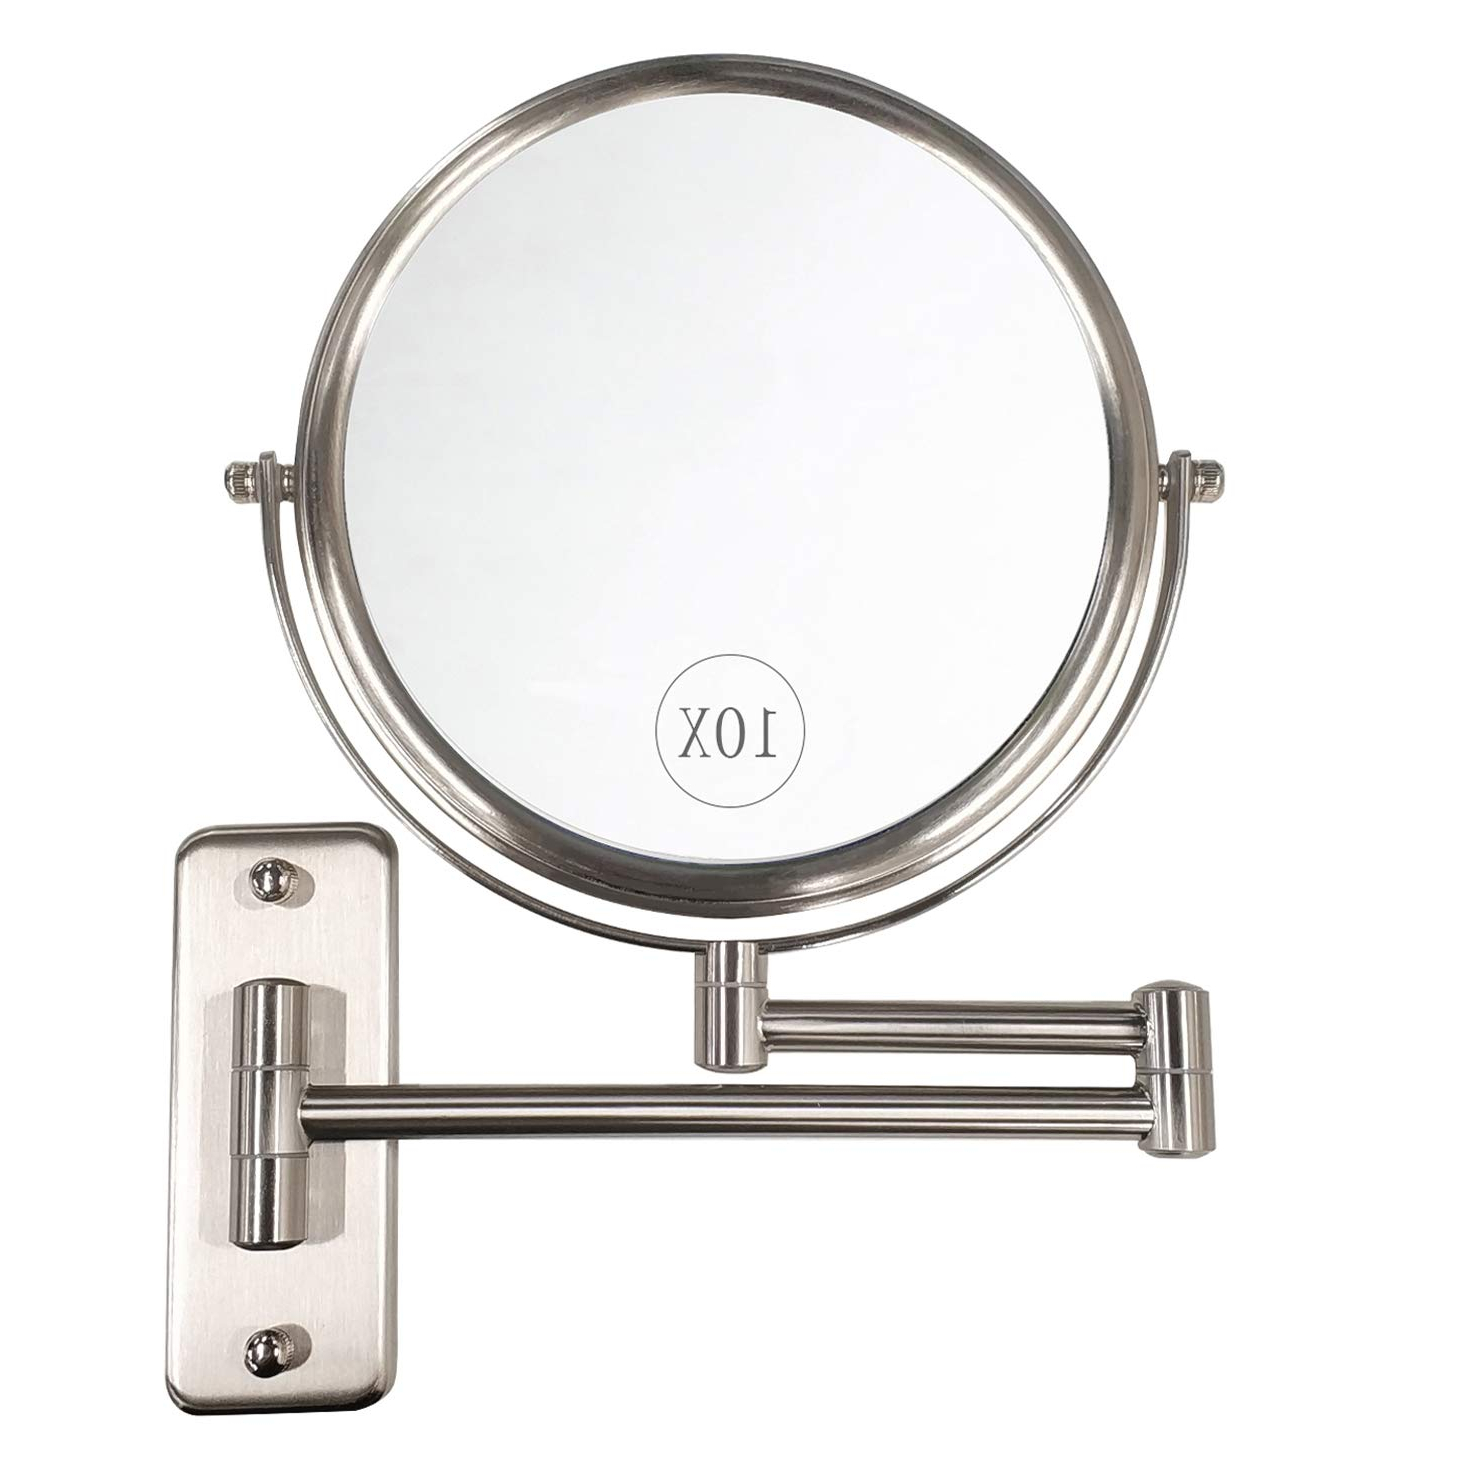 Most Recent Extendable Wall Mirrors Inside Alhakin Wall Mounted Makeup Mirror – 10X Magnification 8'' Two Sided Swivel  Extendable Bathroom Mirror Nickel Finish (View 16 of 20)